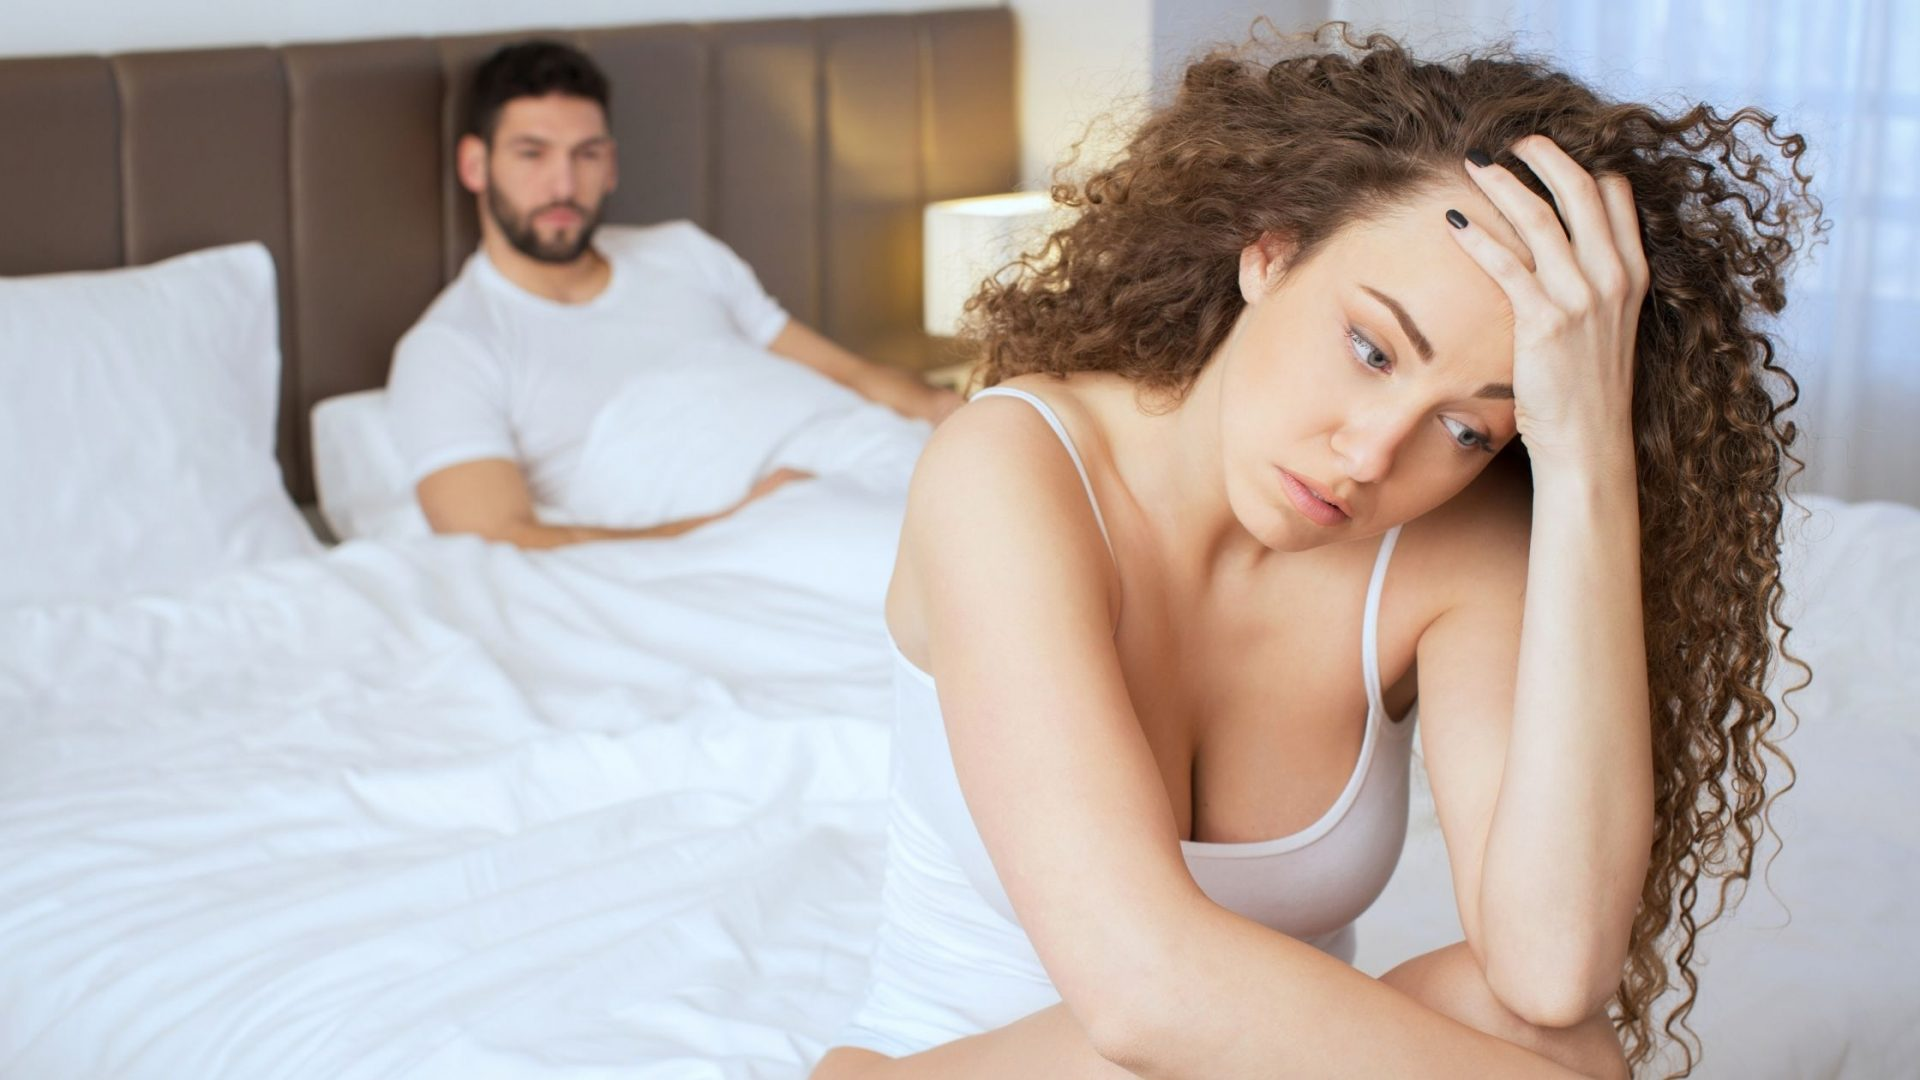 Causes of Pain During Intercourse